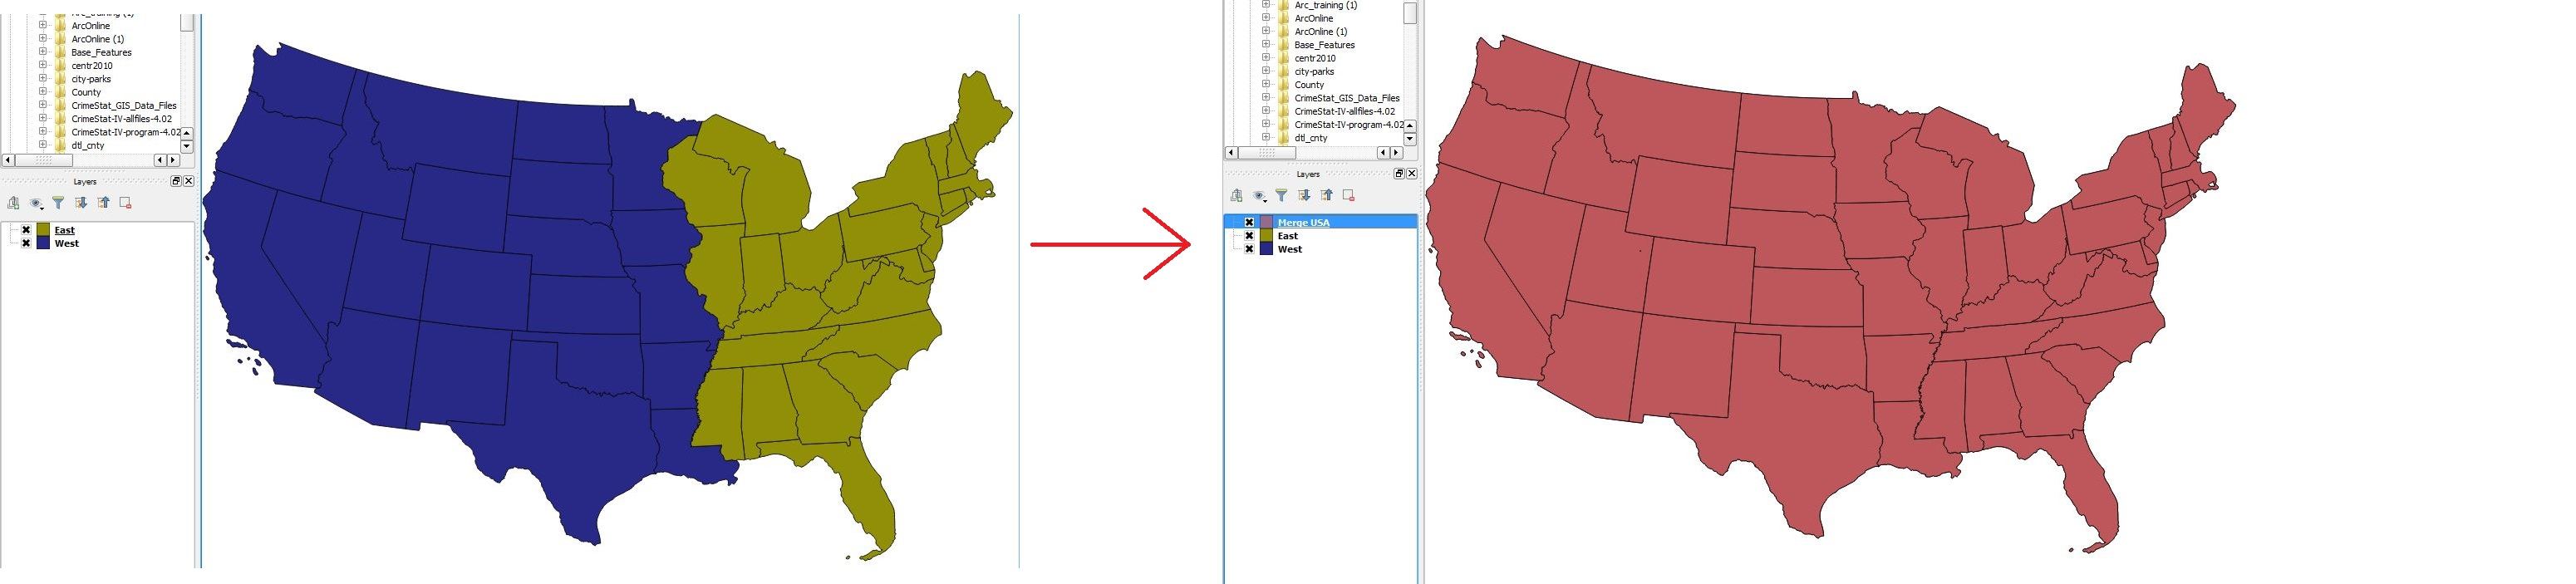 Merge Shapefiles - QGIS - LibGuides at Duke University